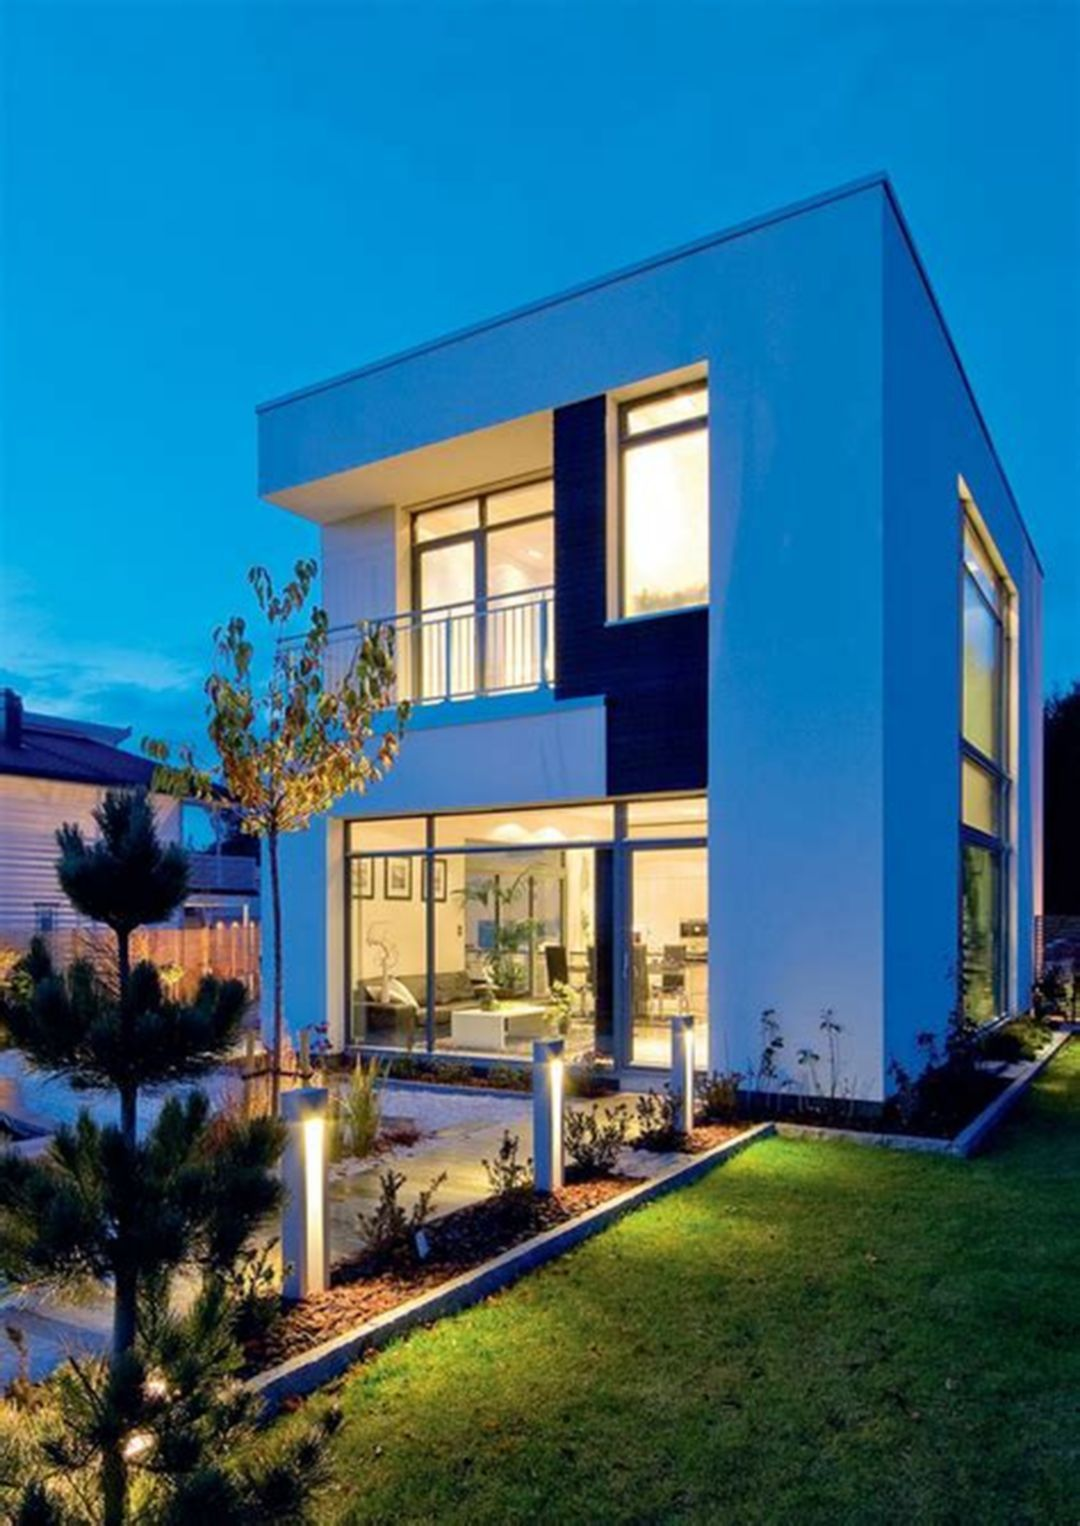 Best 30 Luxurious Home Design Ideas For Minimalist House Modern